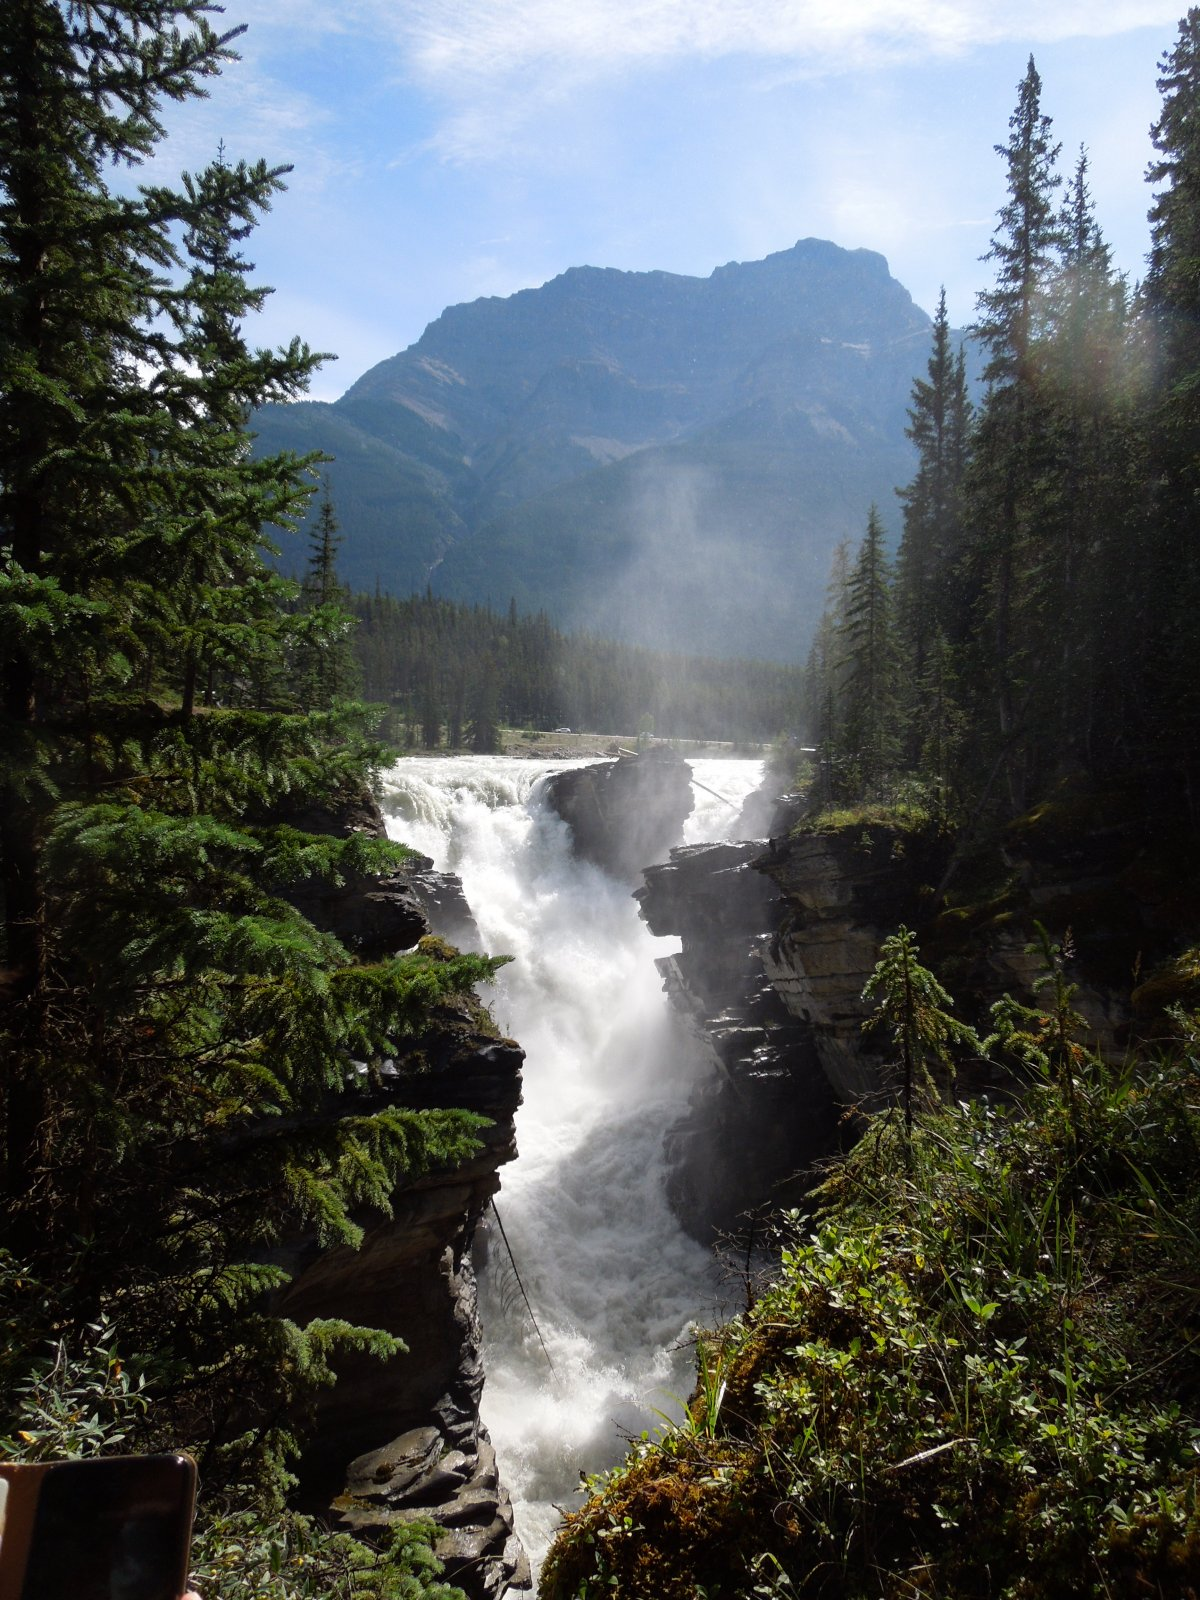 Click image for larger version  Name:Dawson Creek to Icefield Parkway to Cochrane 098.jpg Views:57 Size:428.5 KB ID:222436